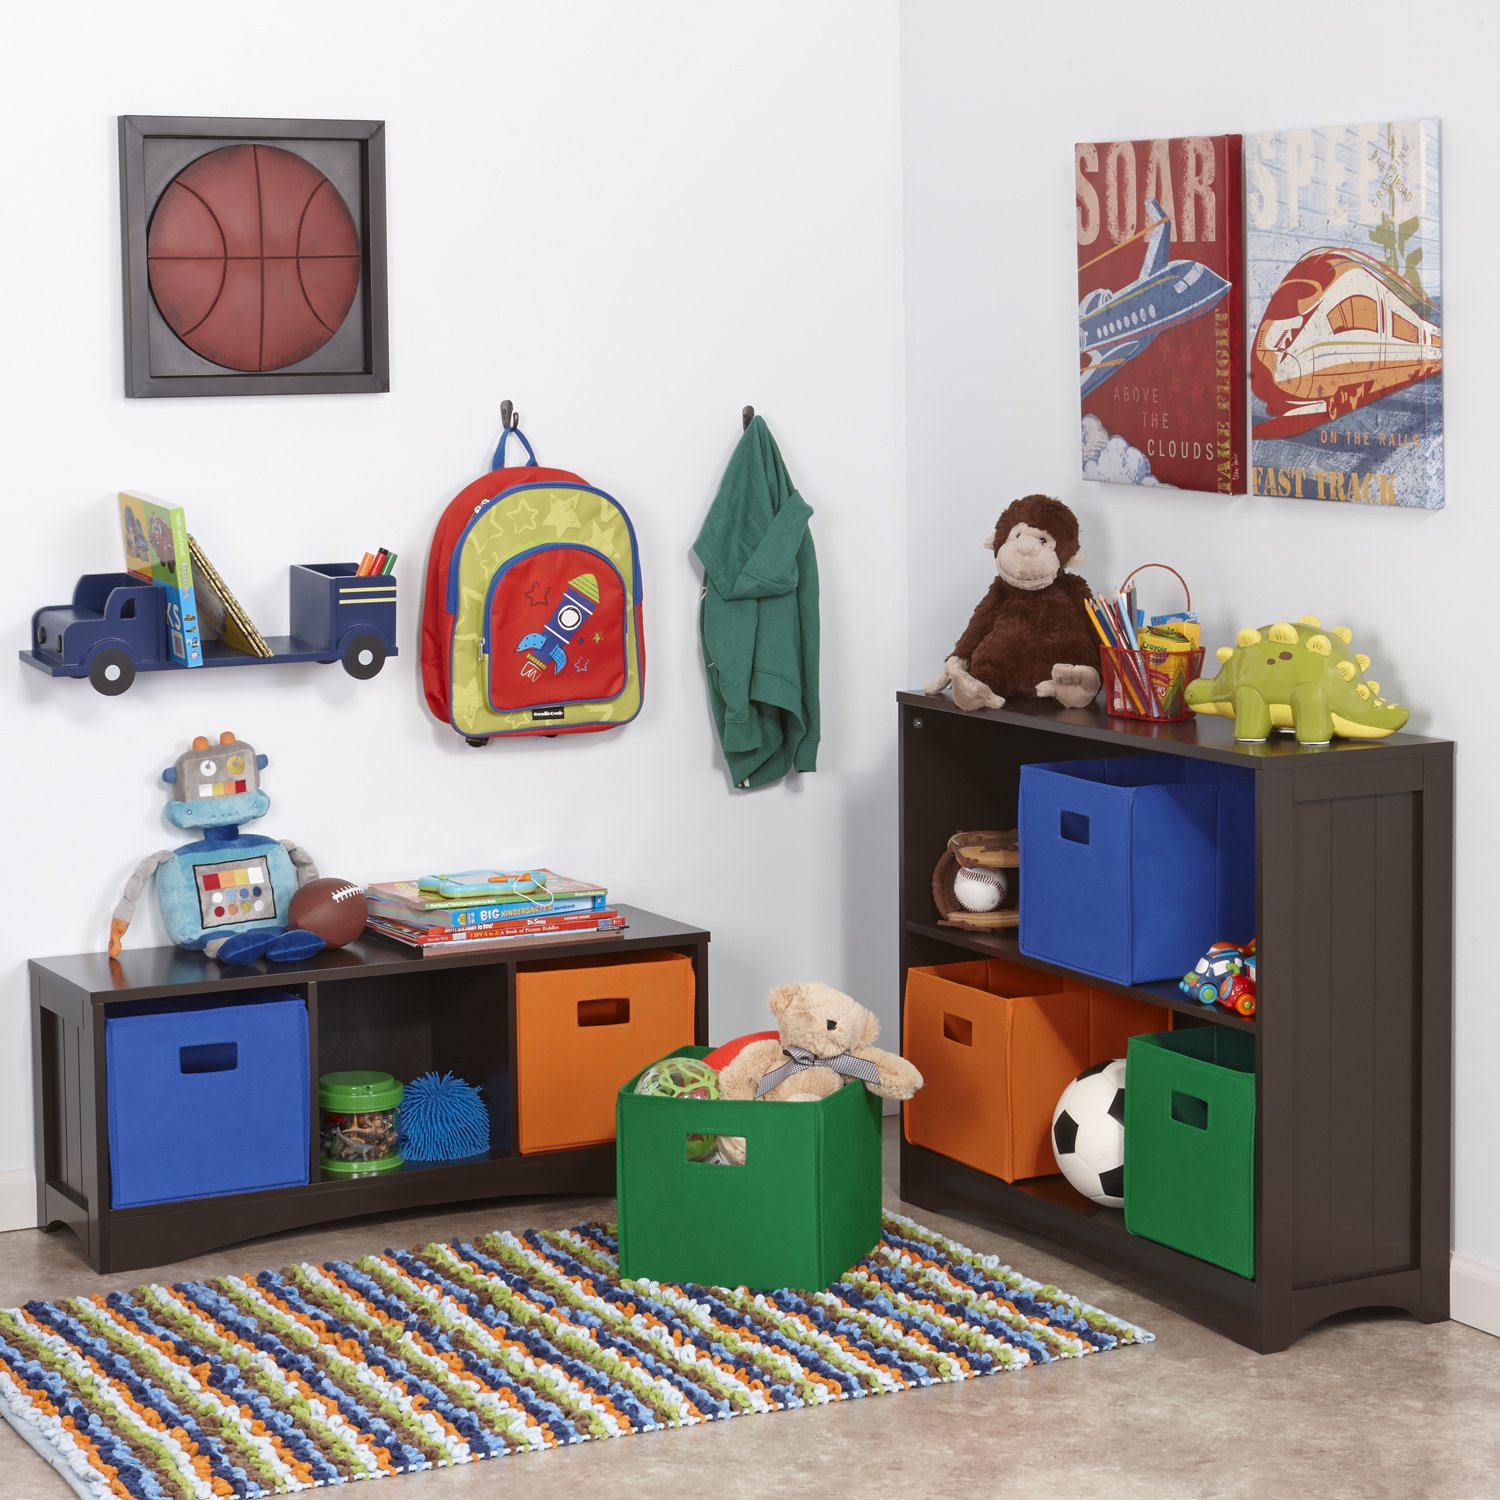 White Sourcing Solutions Inc. RiverRidge 02-023 Bench with 3 Cubbies for Kids